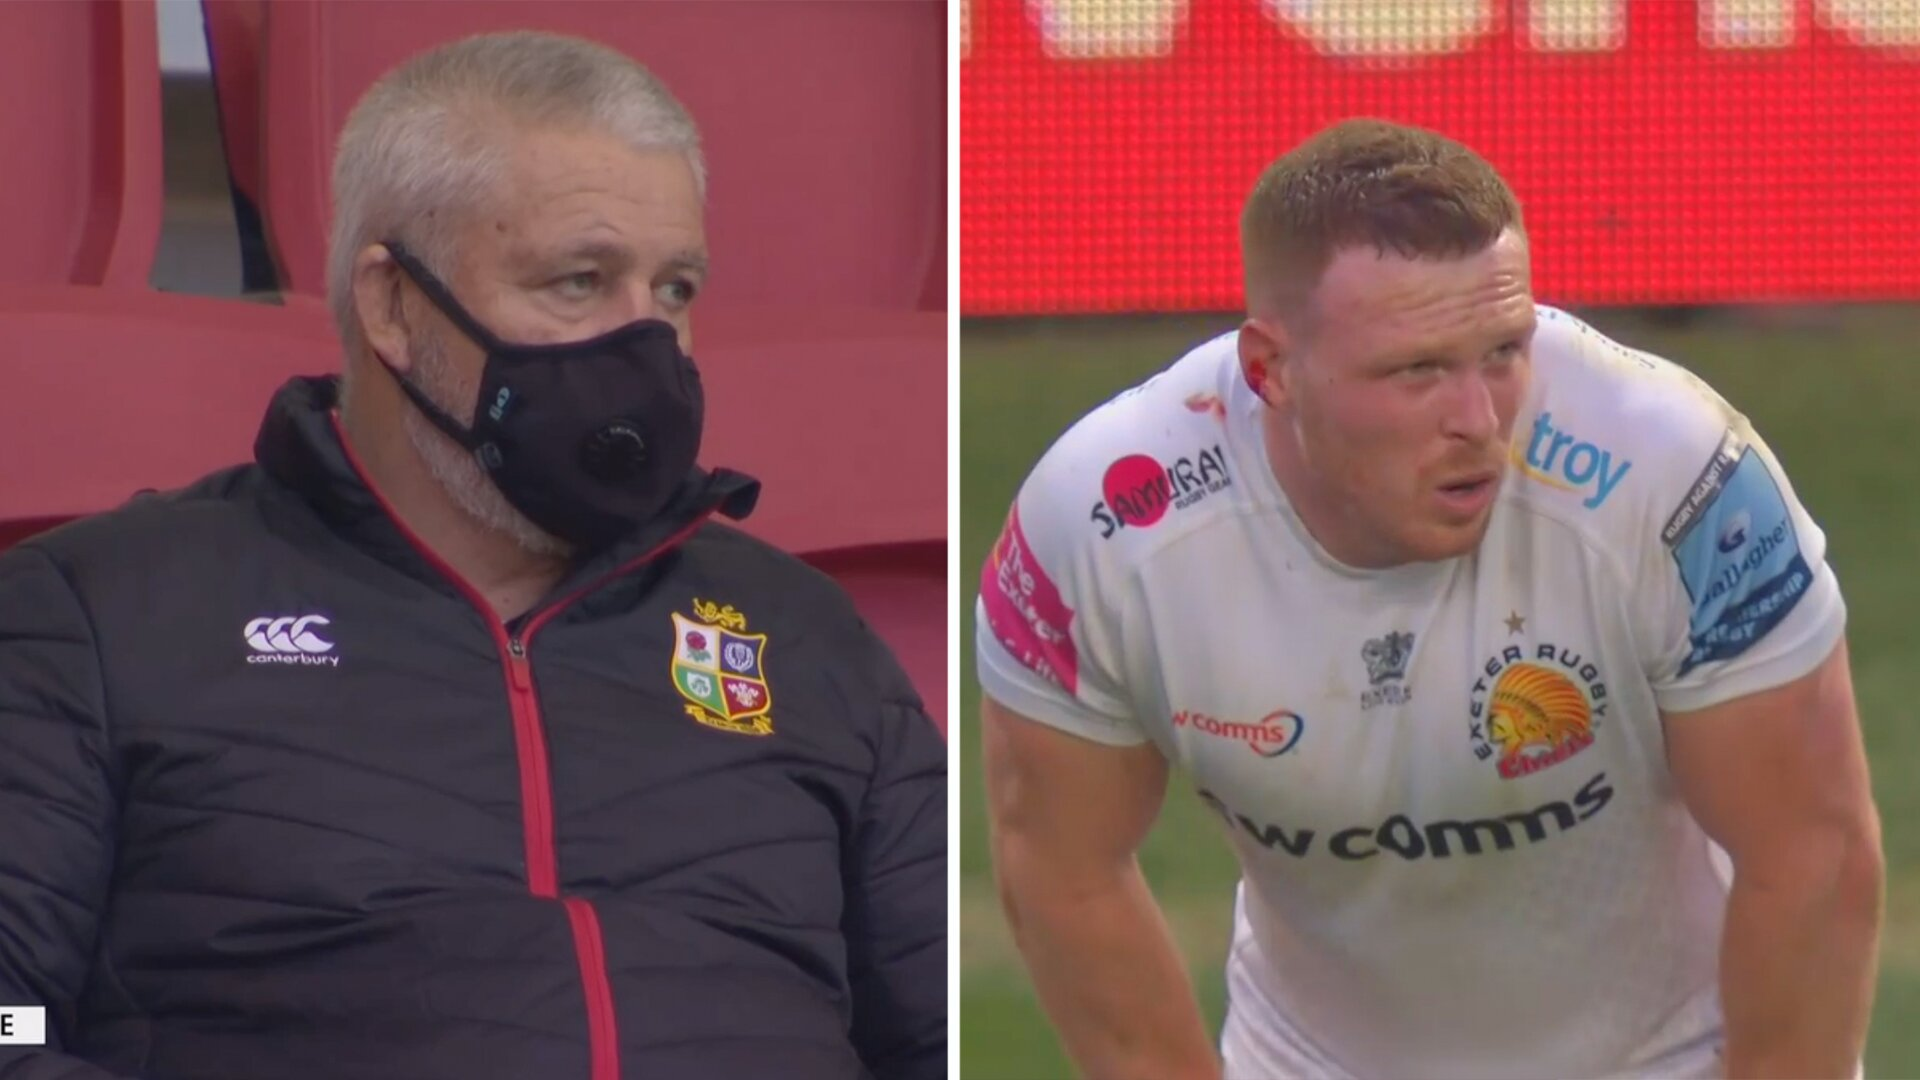 Sam Simmonds sends clear message to Lions coach Warren Gatland in middle of match